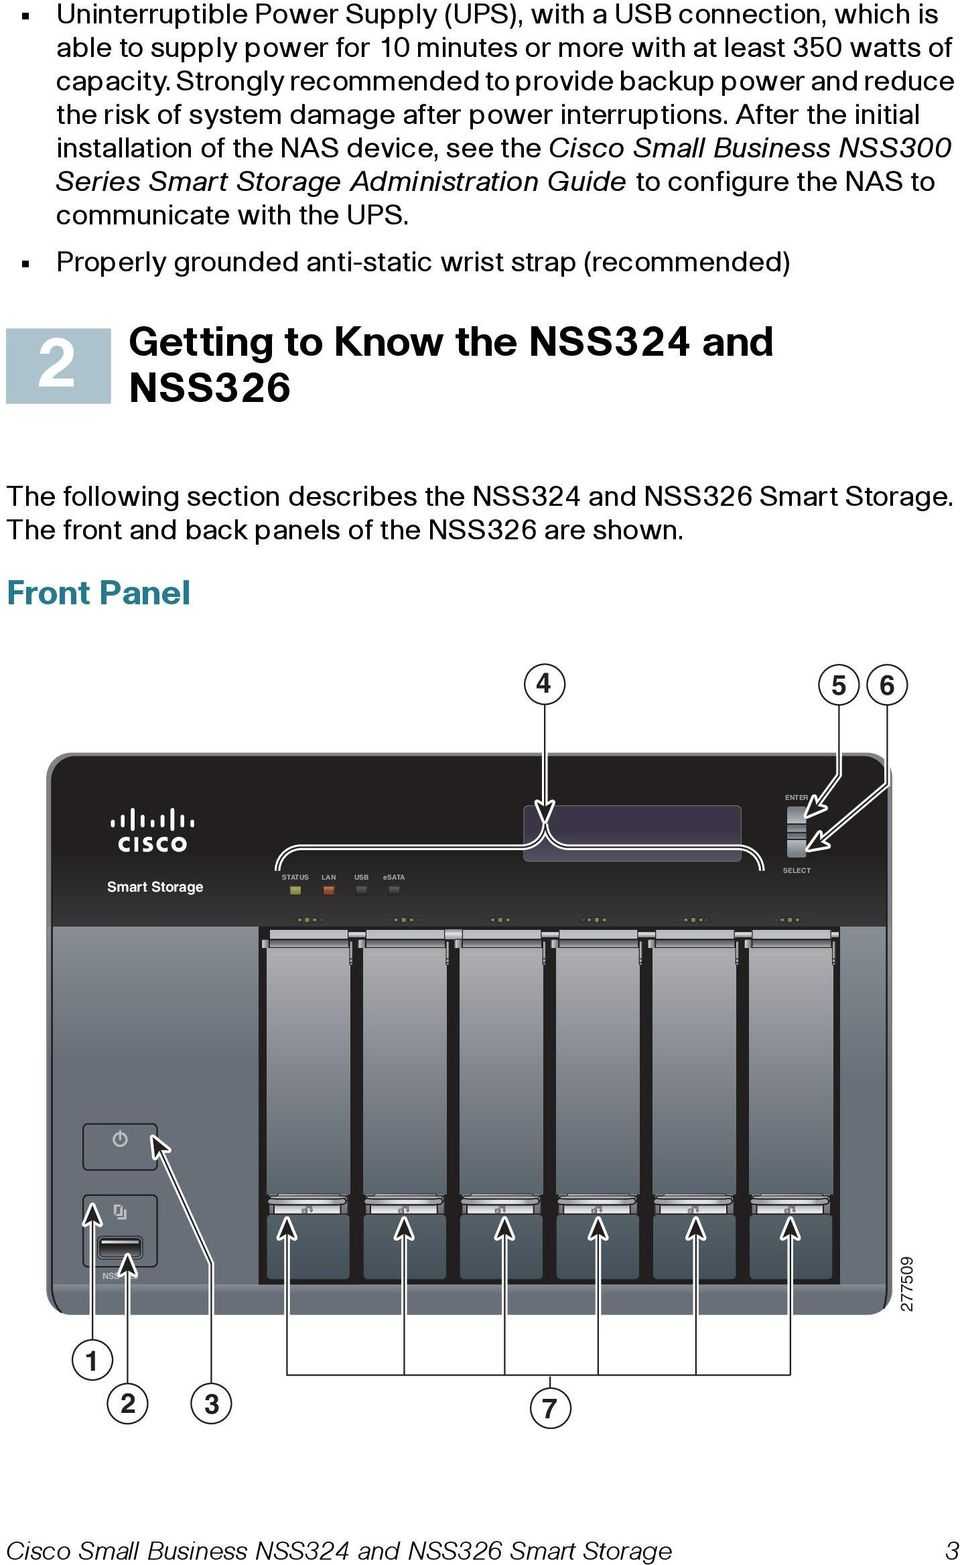 After the initial installation of the NAS device, see the Cisco Small Business NSS300 Series Smart Storage Administration Guide to configure the NAS to communicate with the UPS.